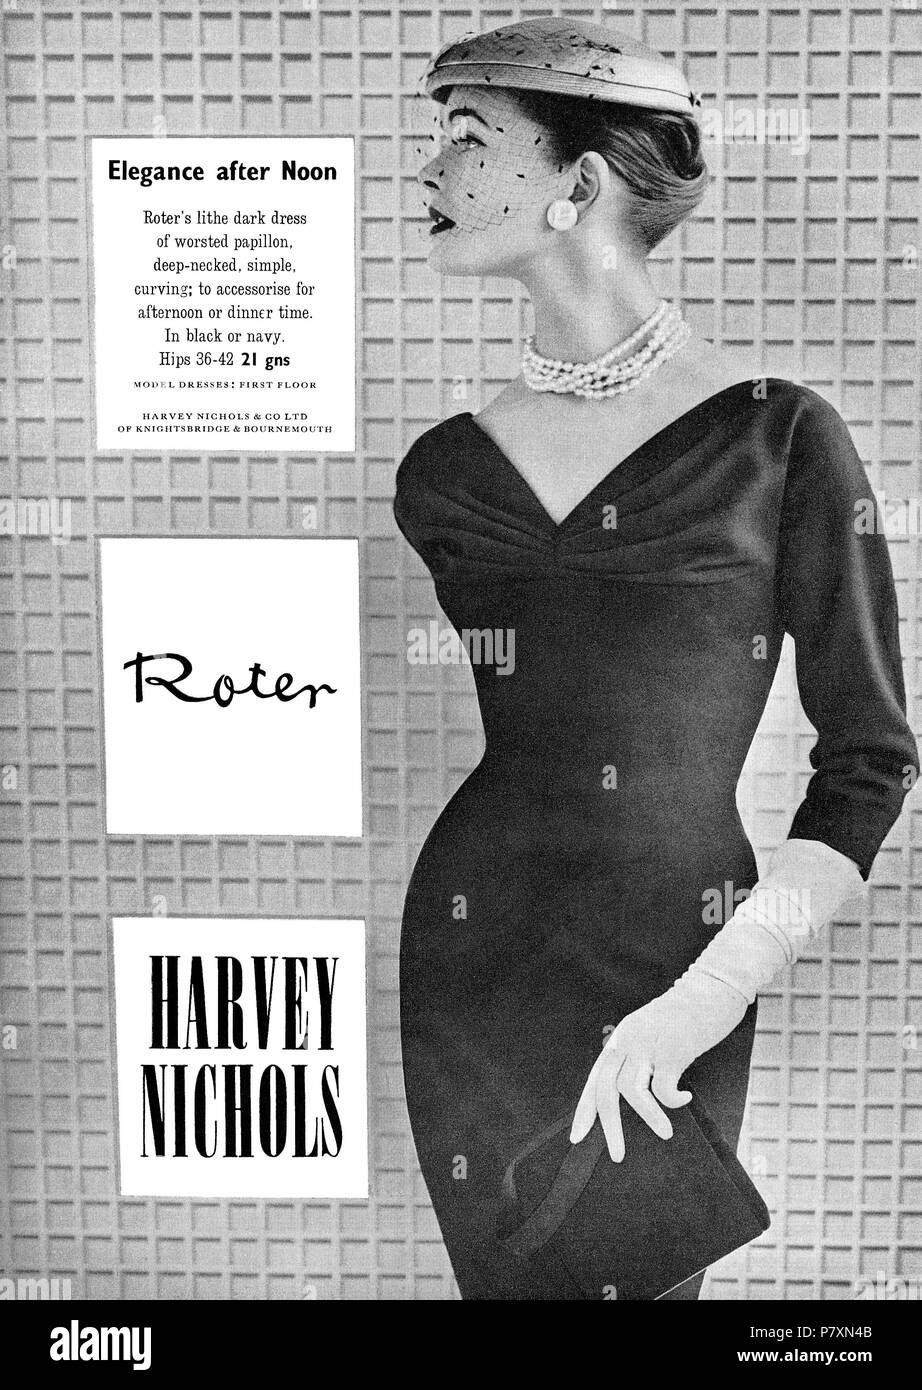 1956 British advertisement for Harvey Nichols department store. - Stock Image